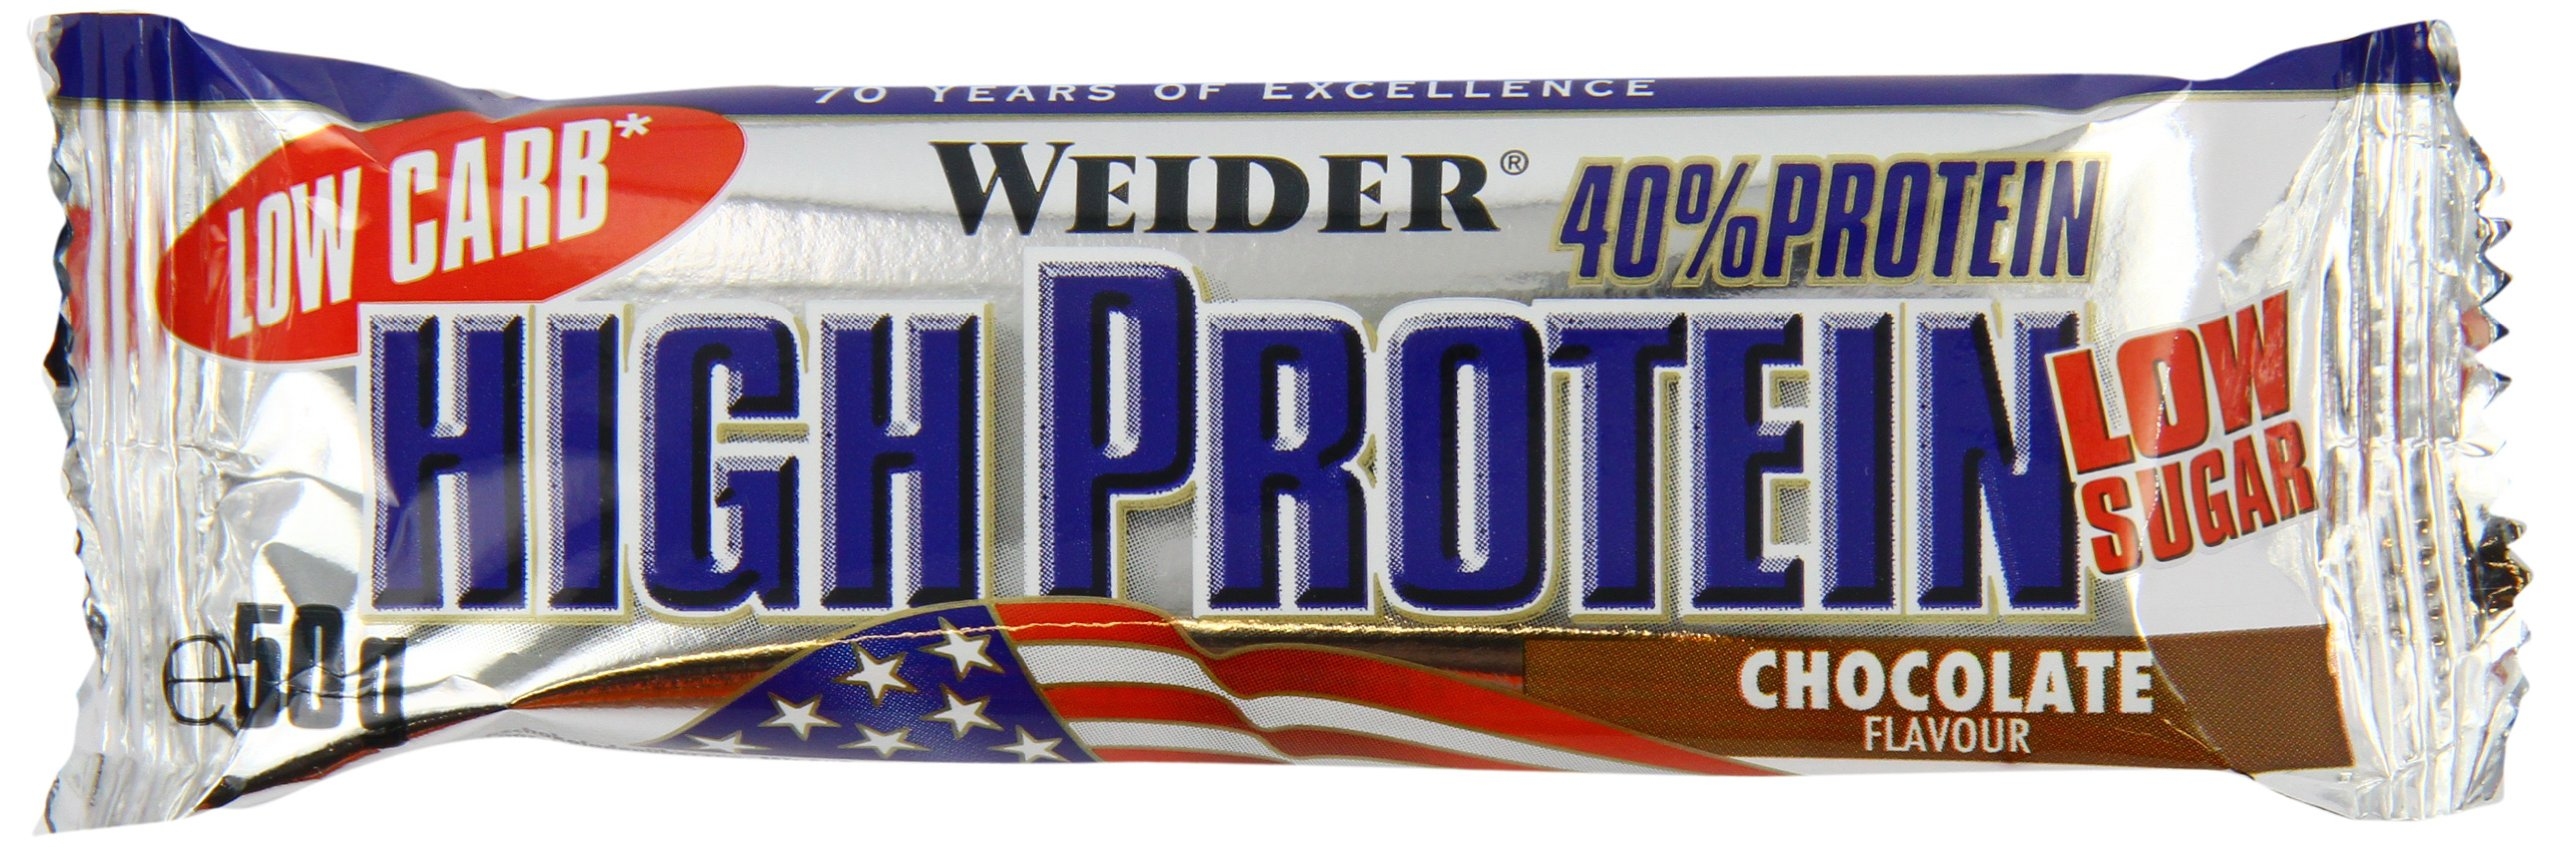 Weider Low Carb High Protein Bar, Schoko, 24 x 50 g (1 x 1.25 kg) product image